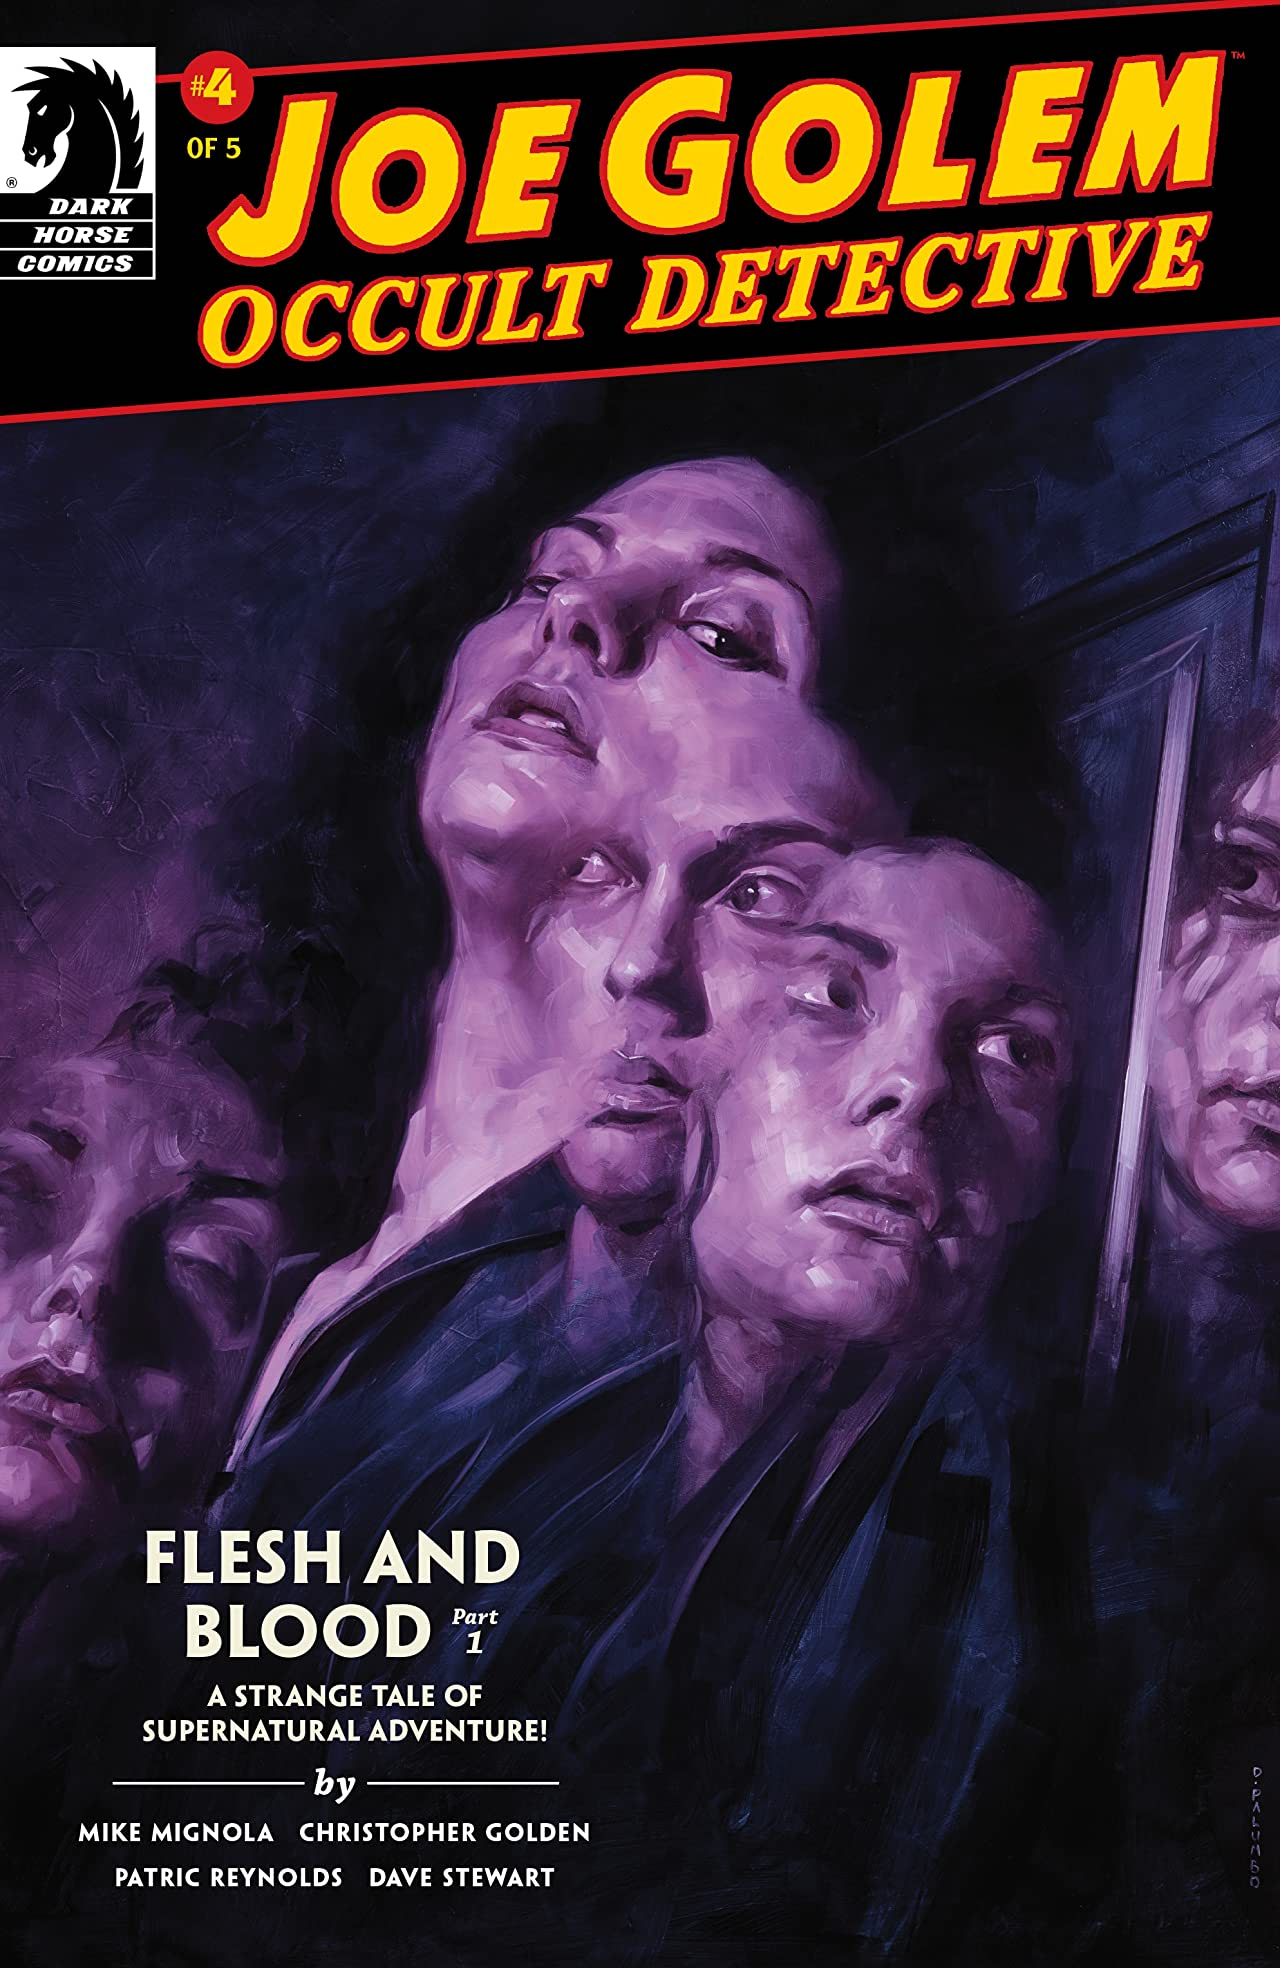 Joe Golem: Occult Detective-- Flesh and Blood #1